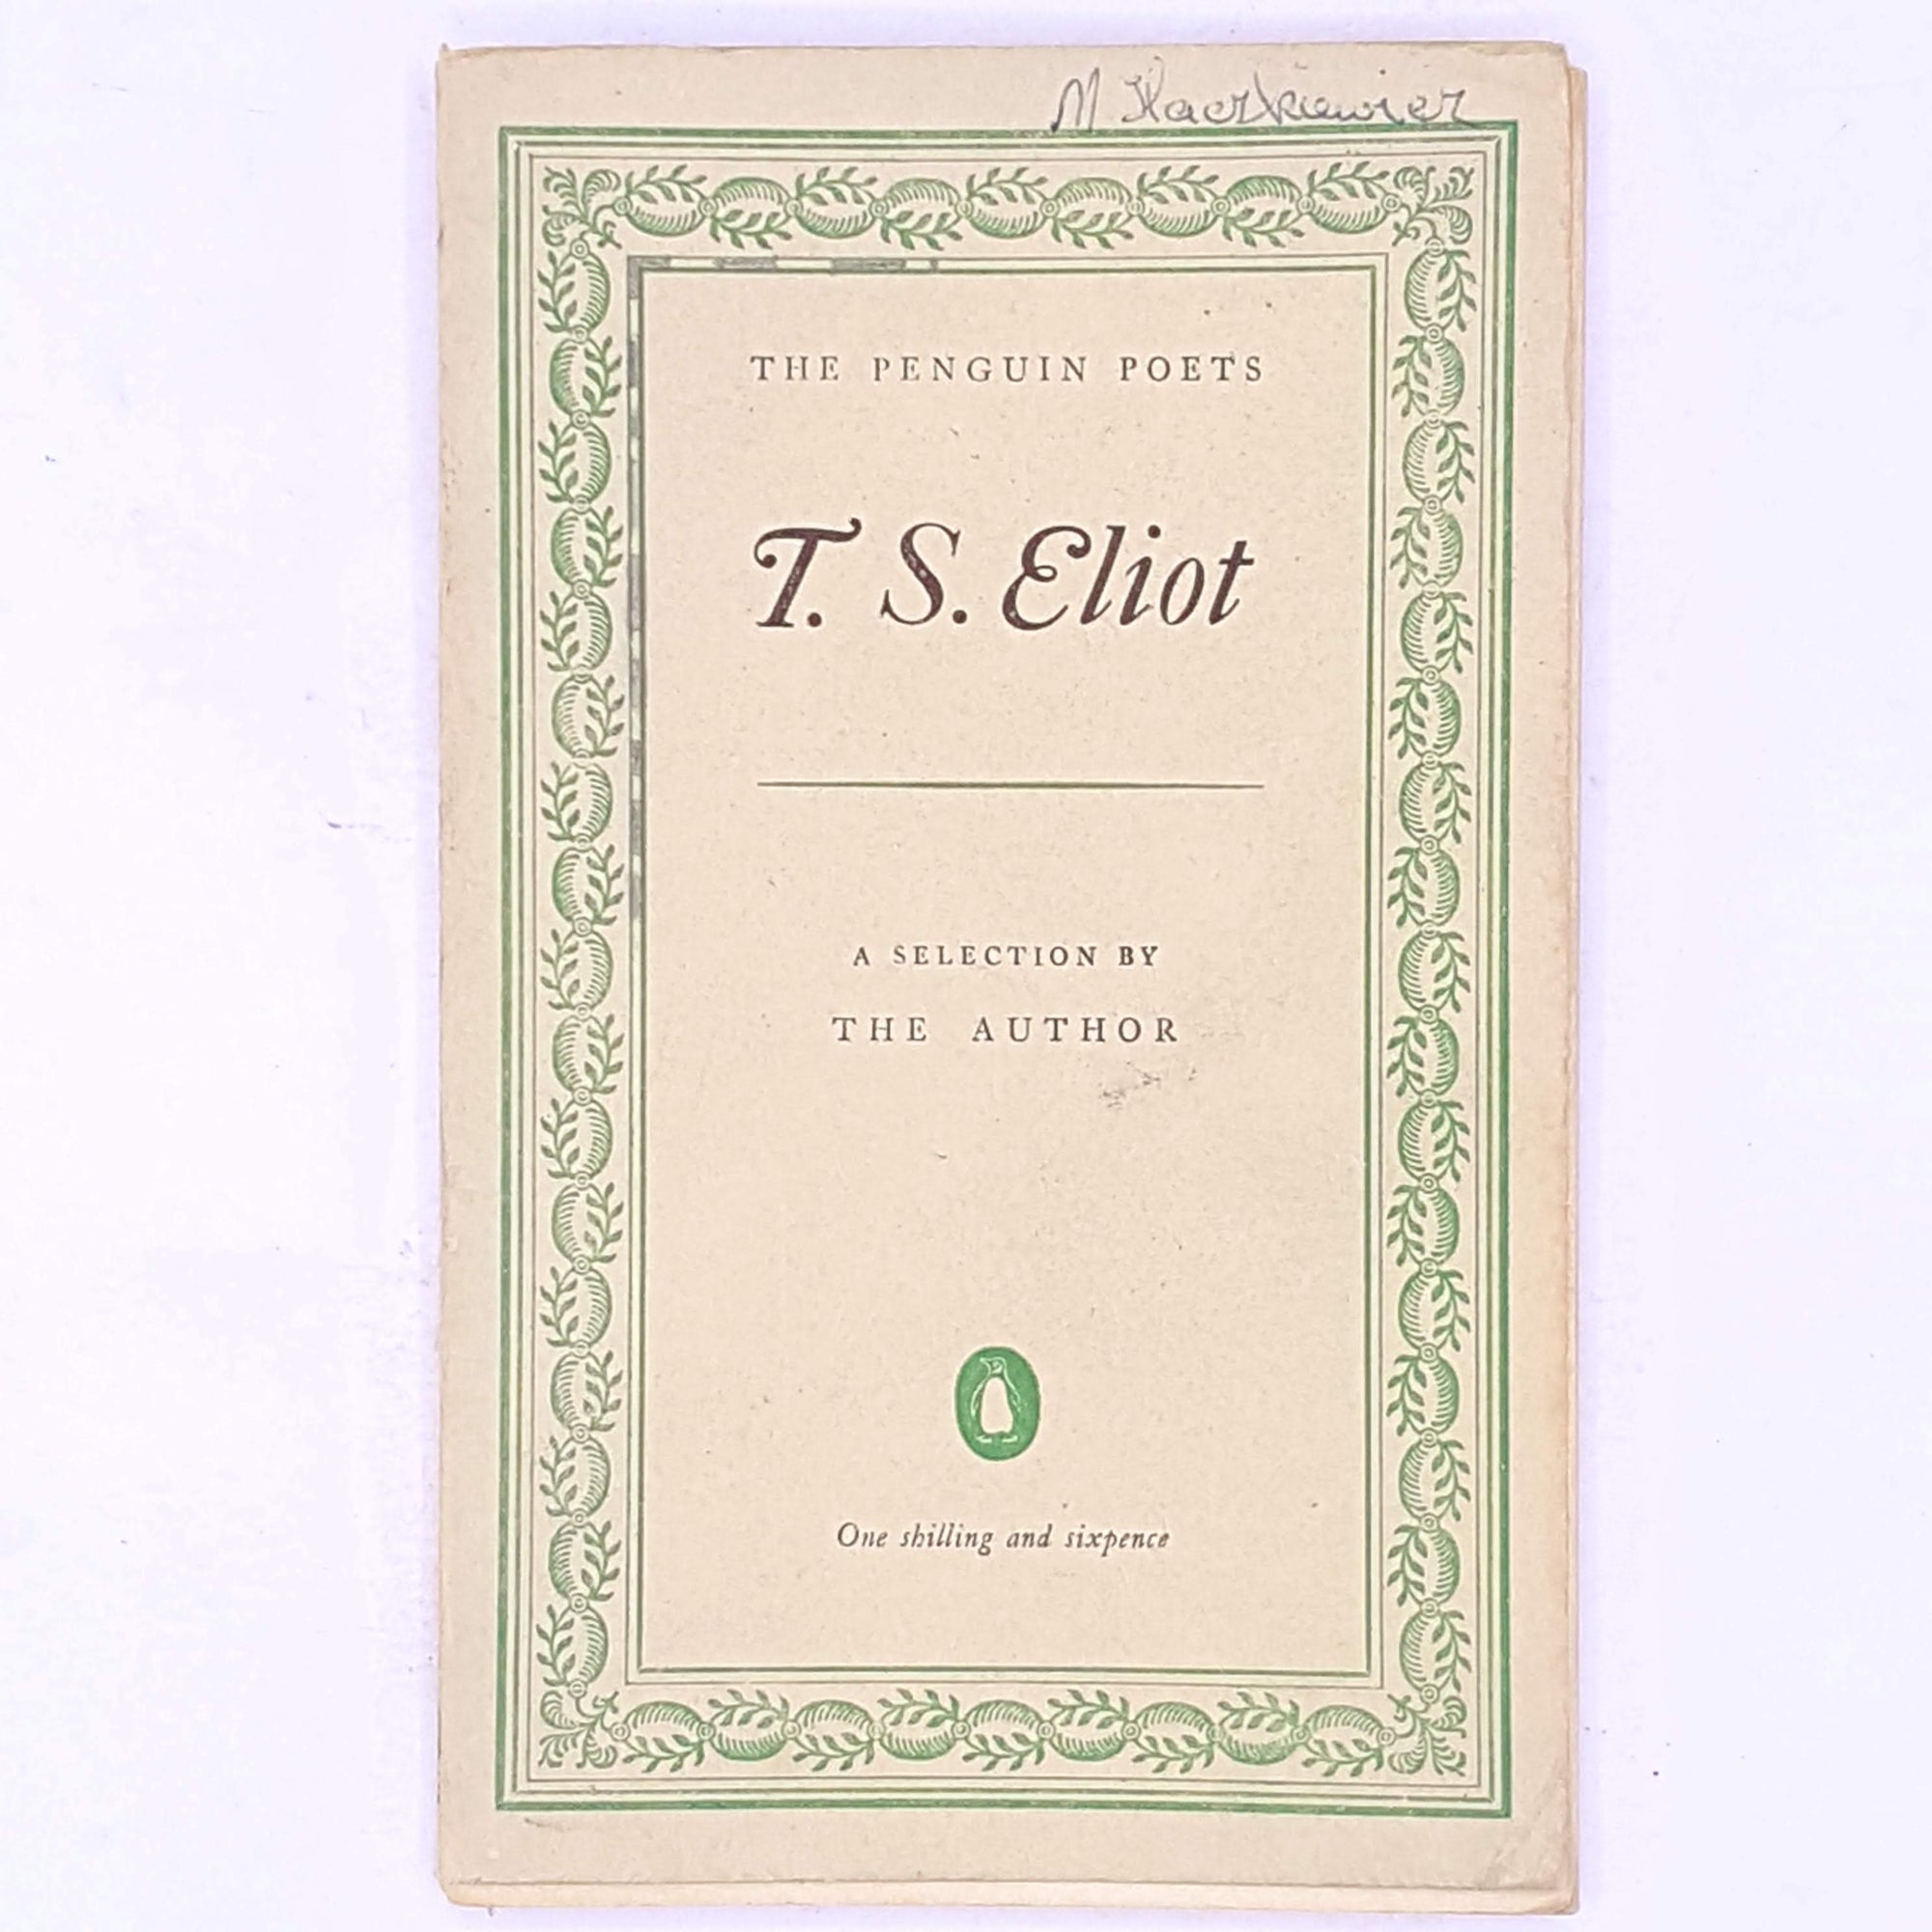 The Penguin Poets T.S. Eliot  a Selection by the Author